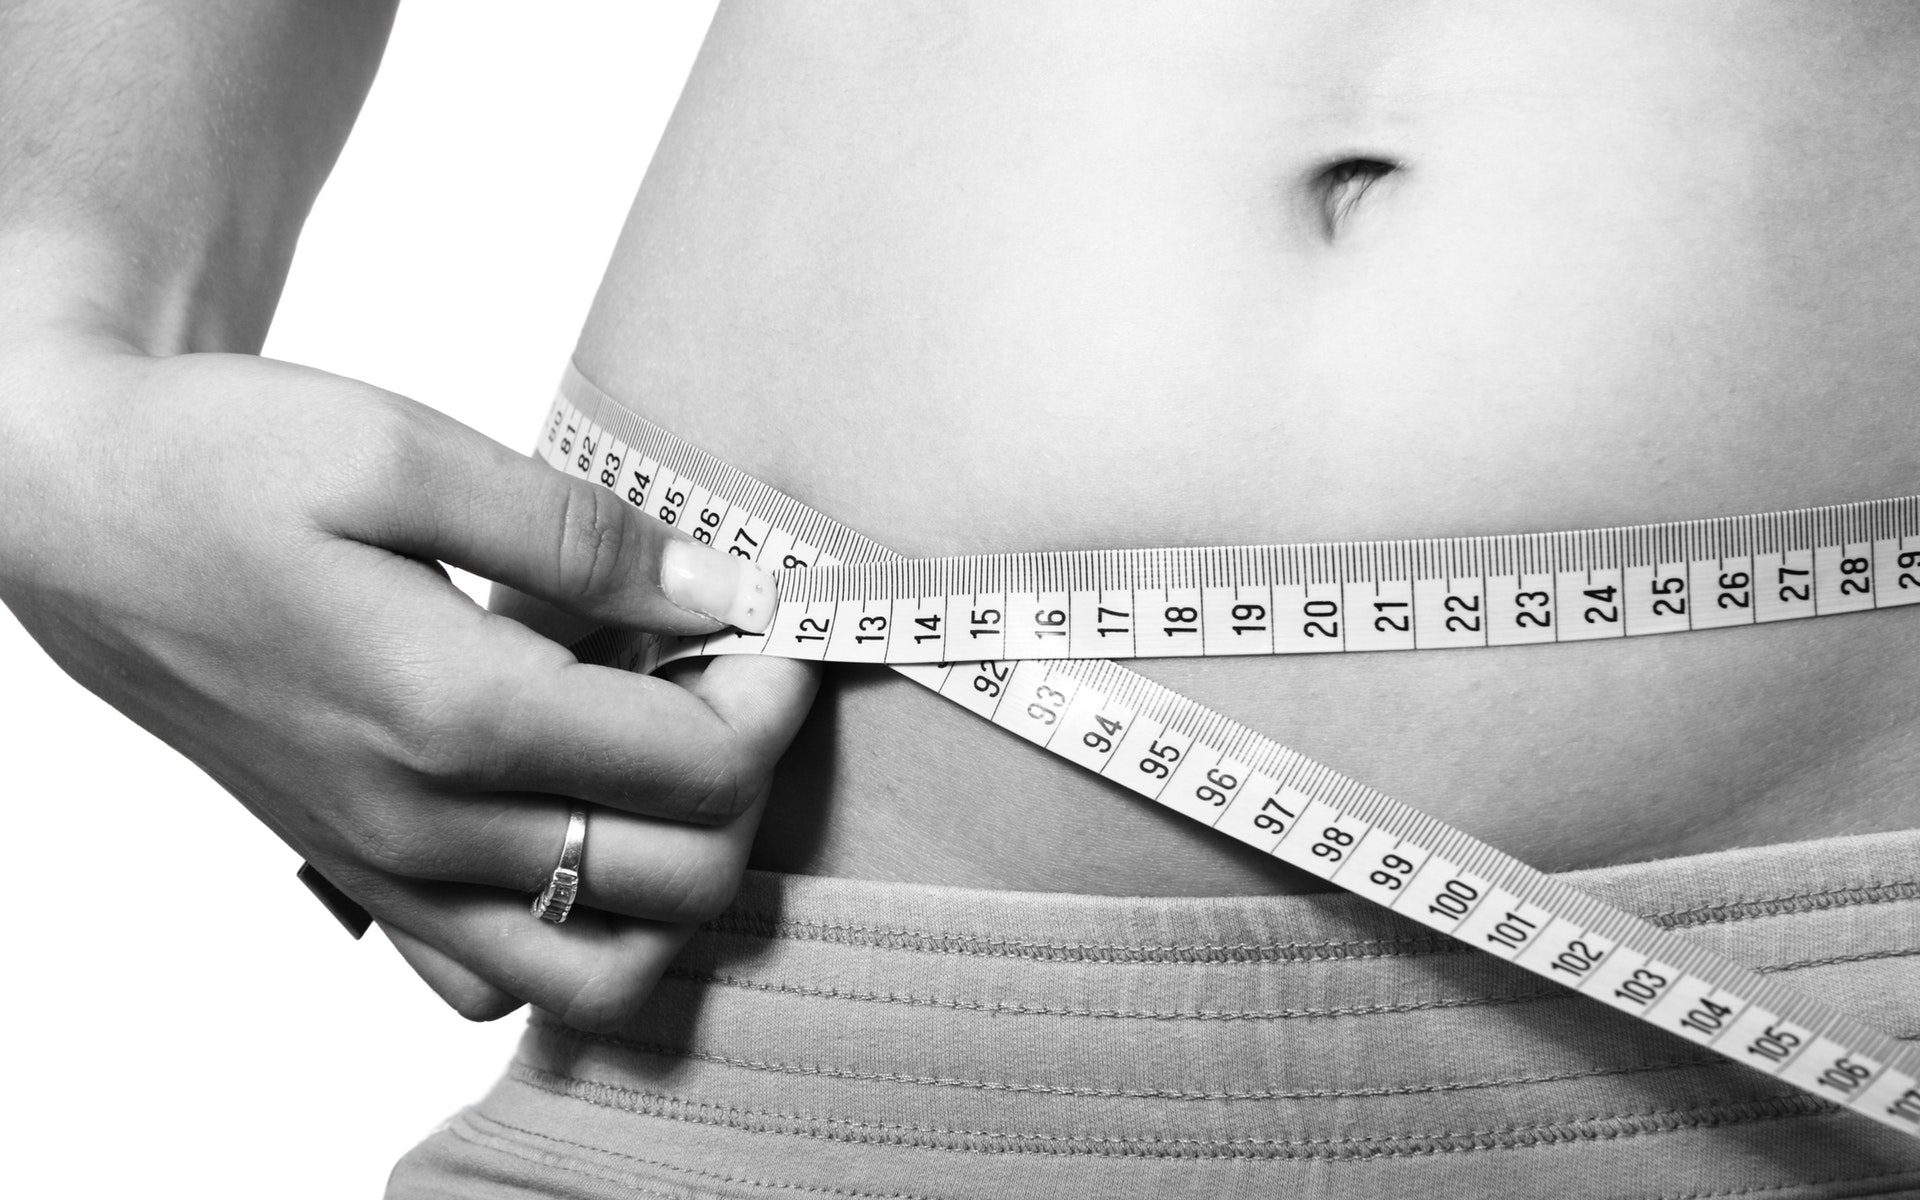 lose a pound of body fat daily